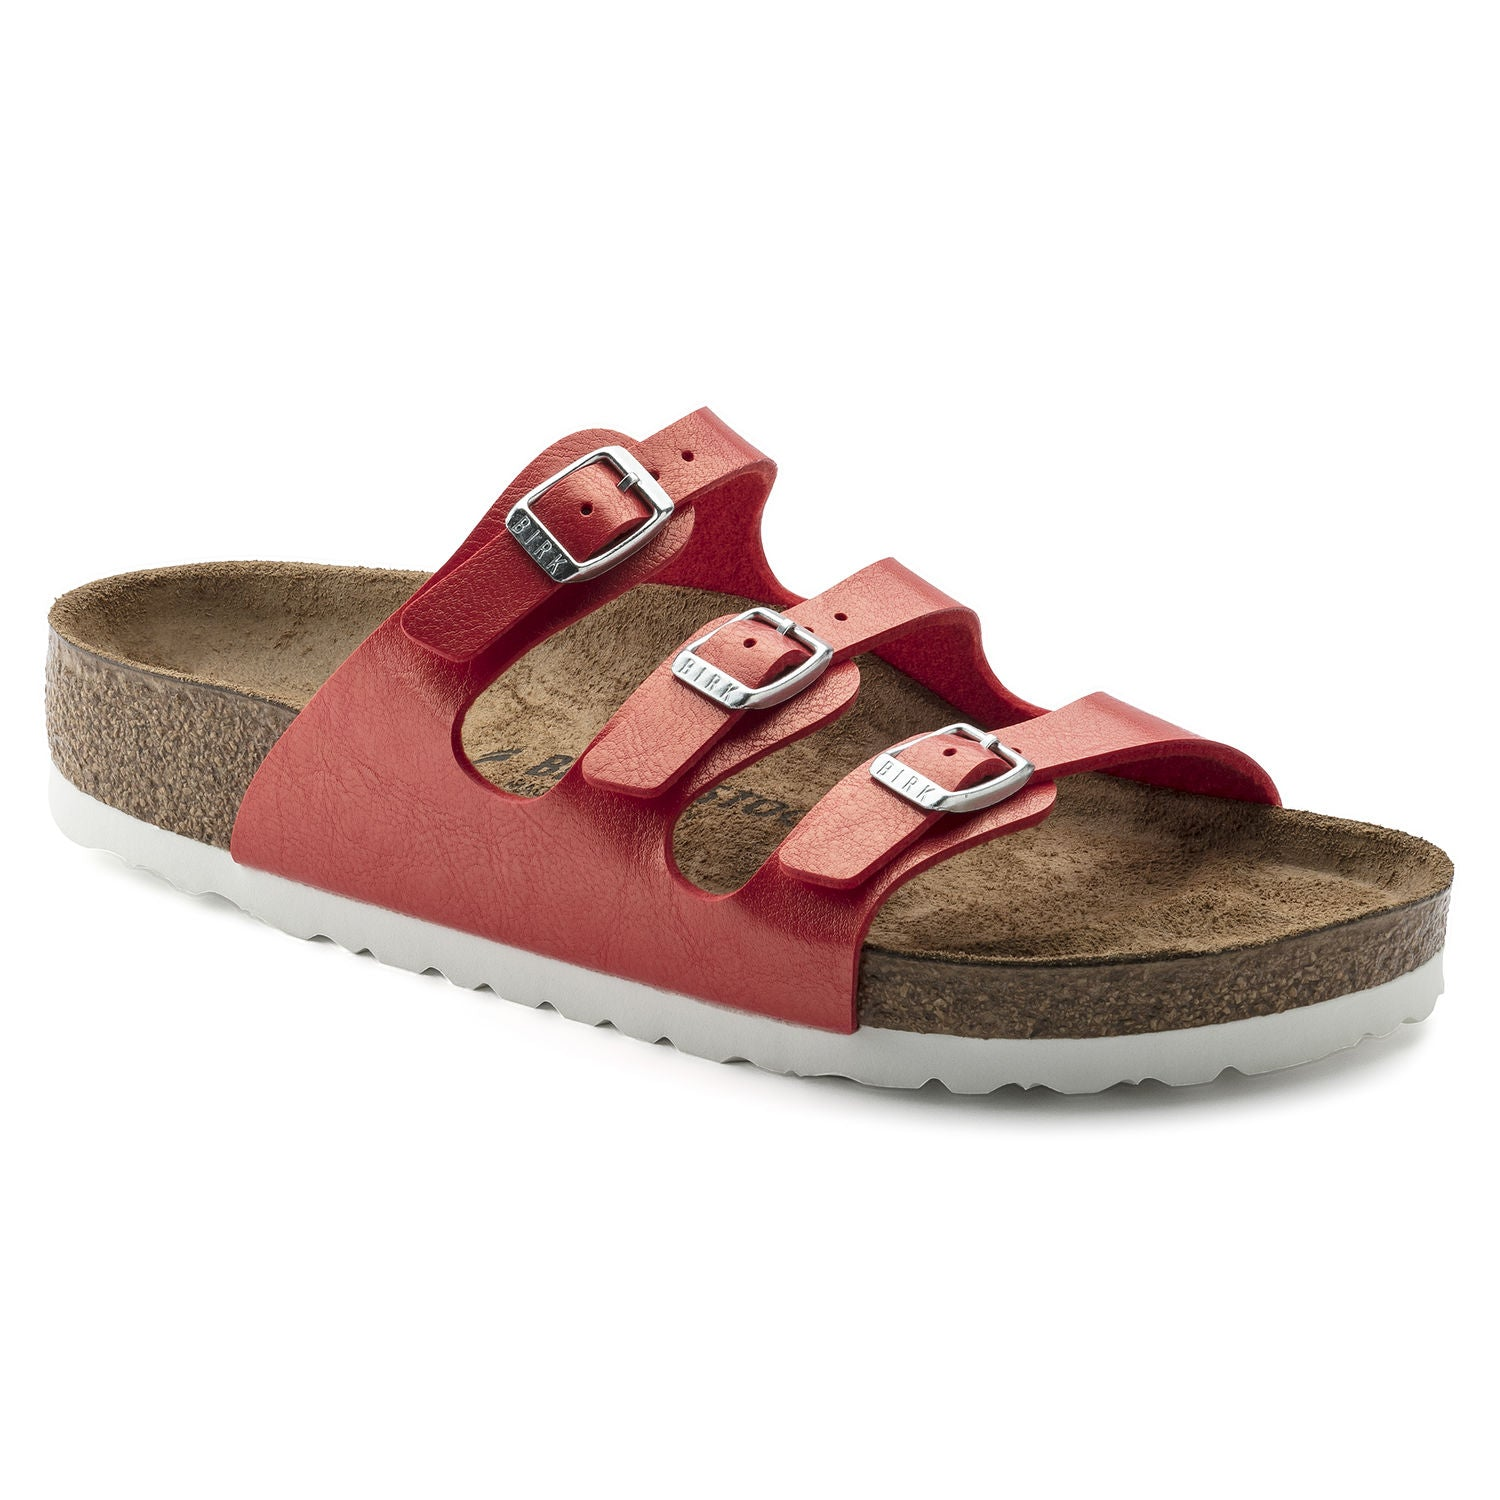 Women's Birkenstock Florida Graceful Hibiscus Slides